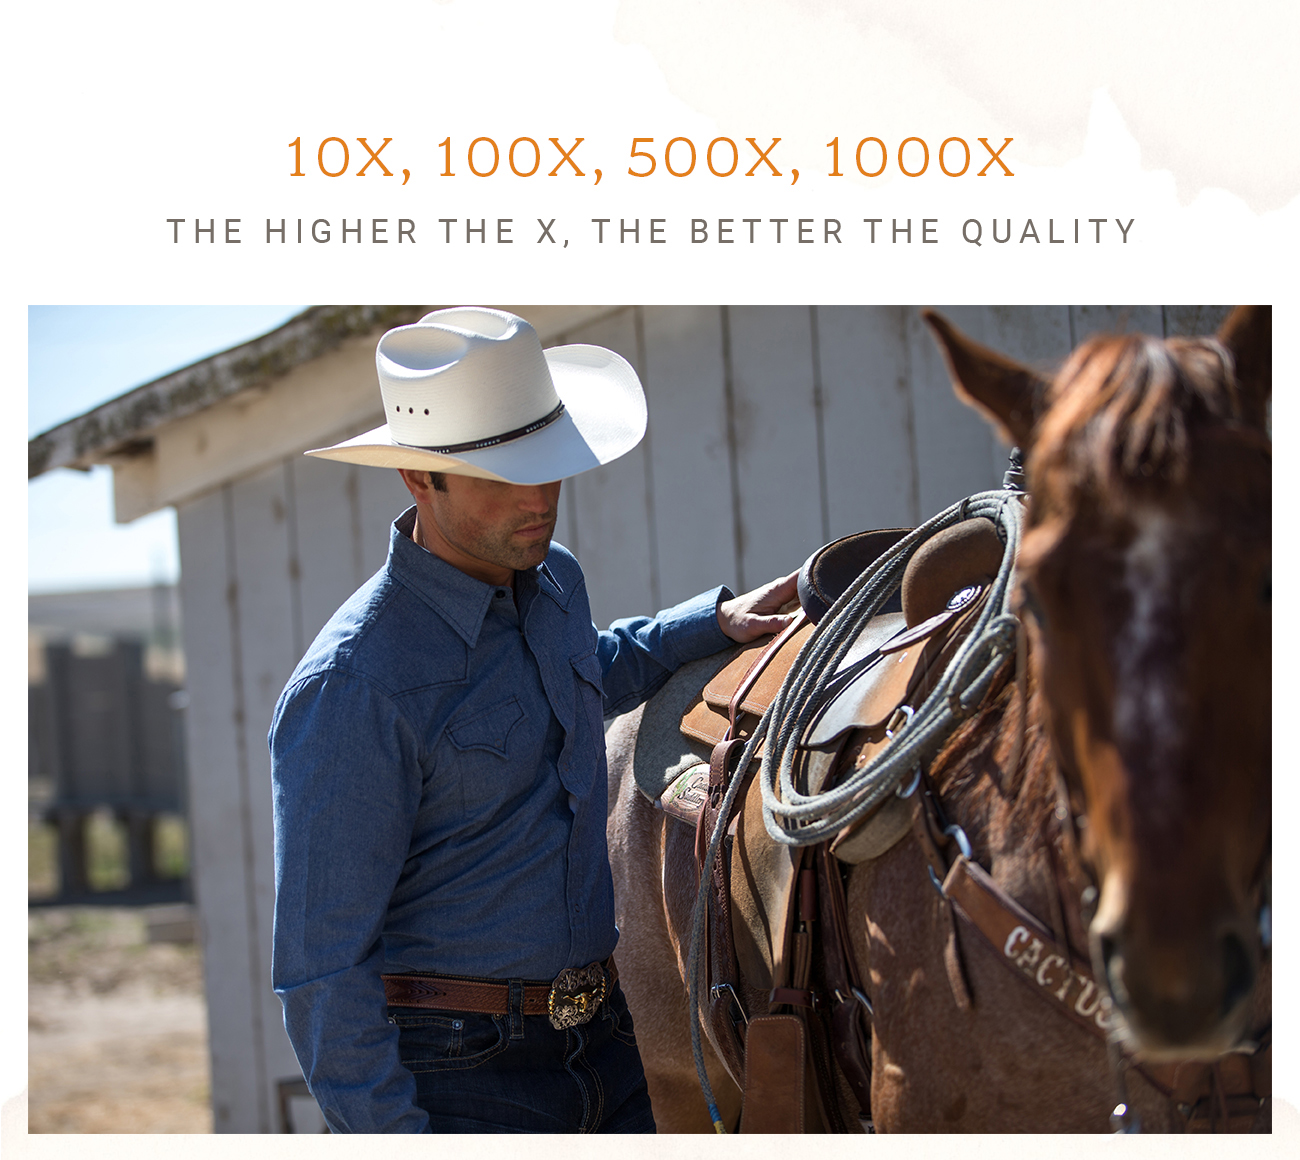 ce6d96ea7f90a 10X, 100X, 500X, 1000X - The Higher the X, The Better the